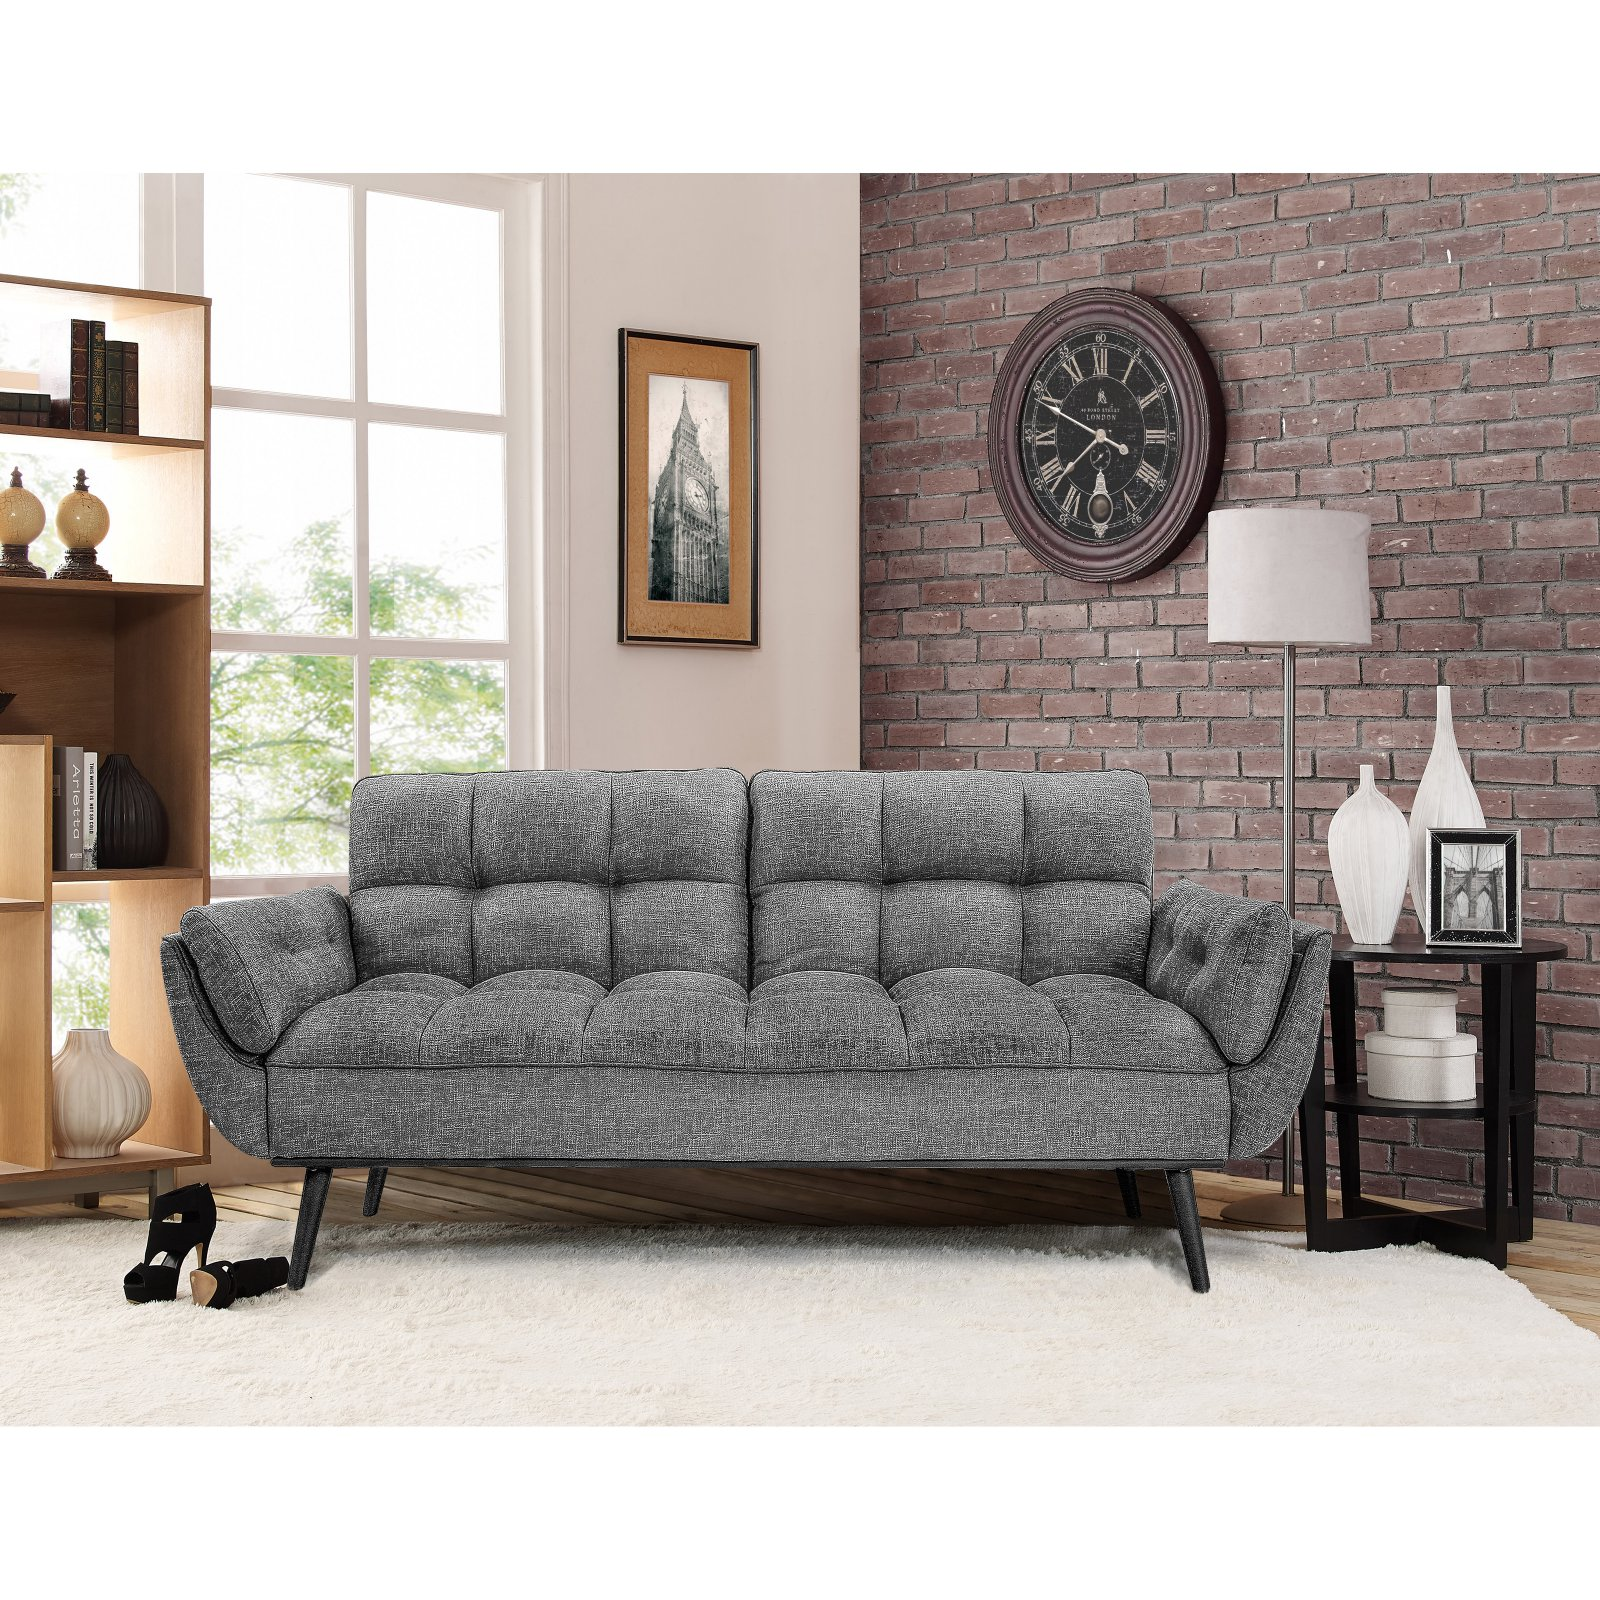 Relax A Lounger Carly Convertible Sofa